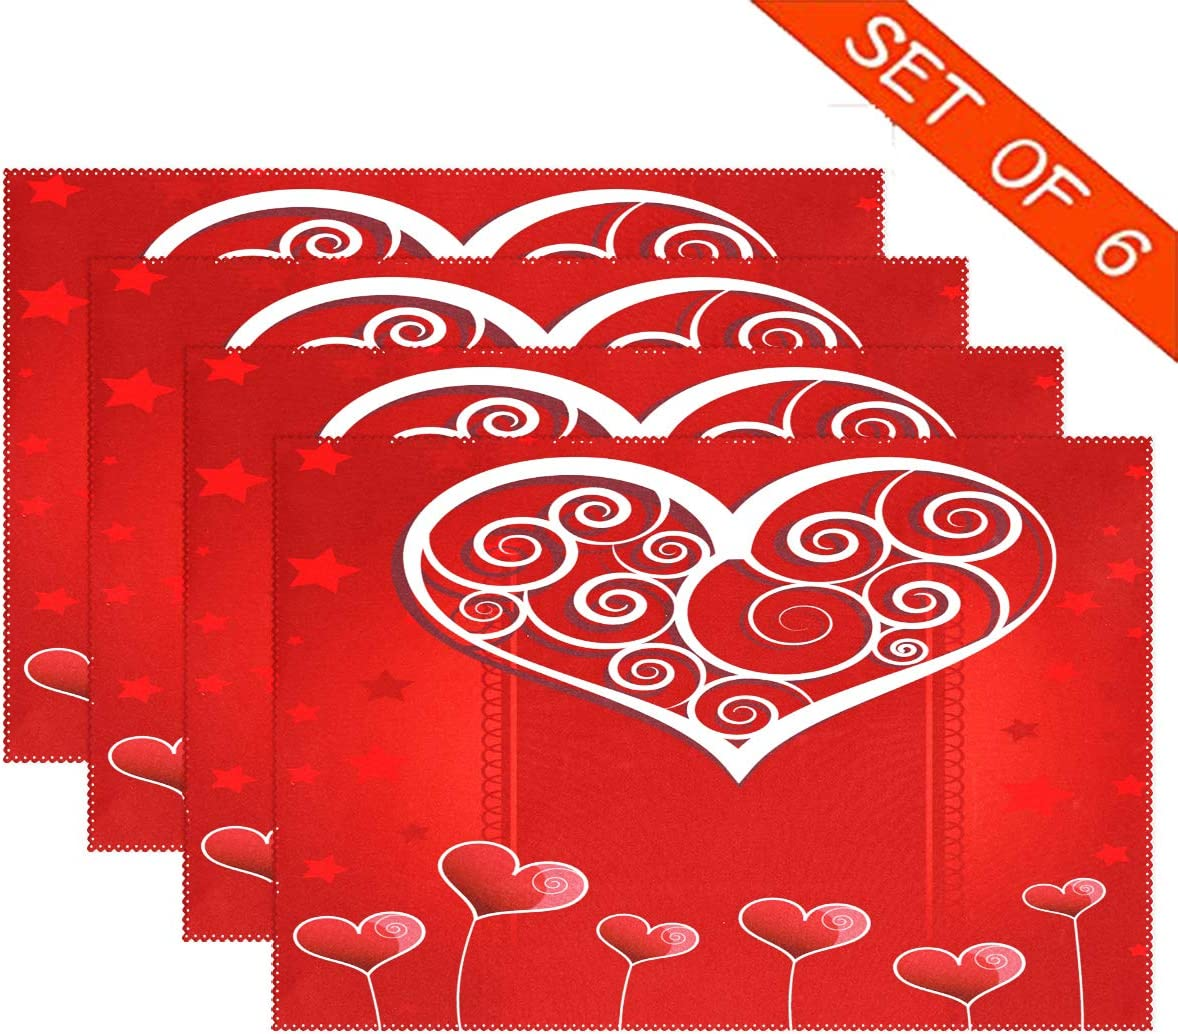 Heart Love Valentine's Day PlaceMats Table mats for Kitchen Dining Set of 6 Romantic Rose Red XOXO Valentines Place mats Tablemats 12x18 inch for Wedding Party Tabletop Home Decor